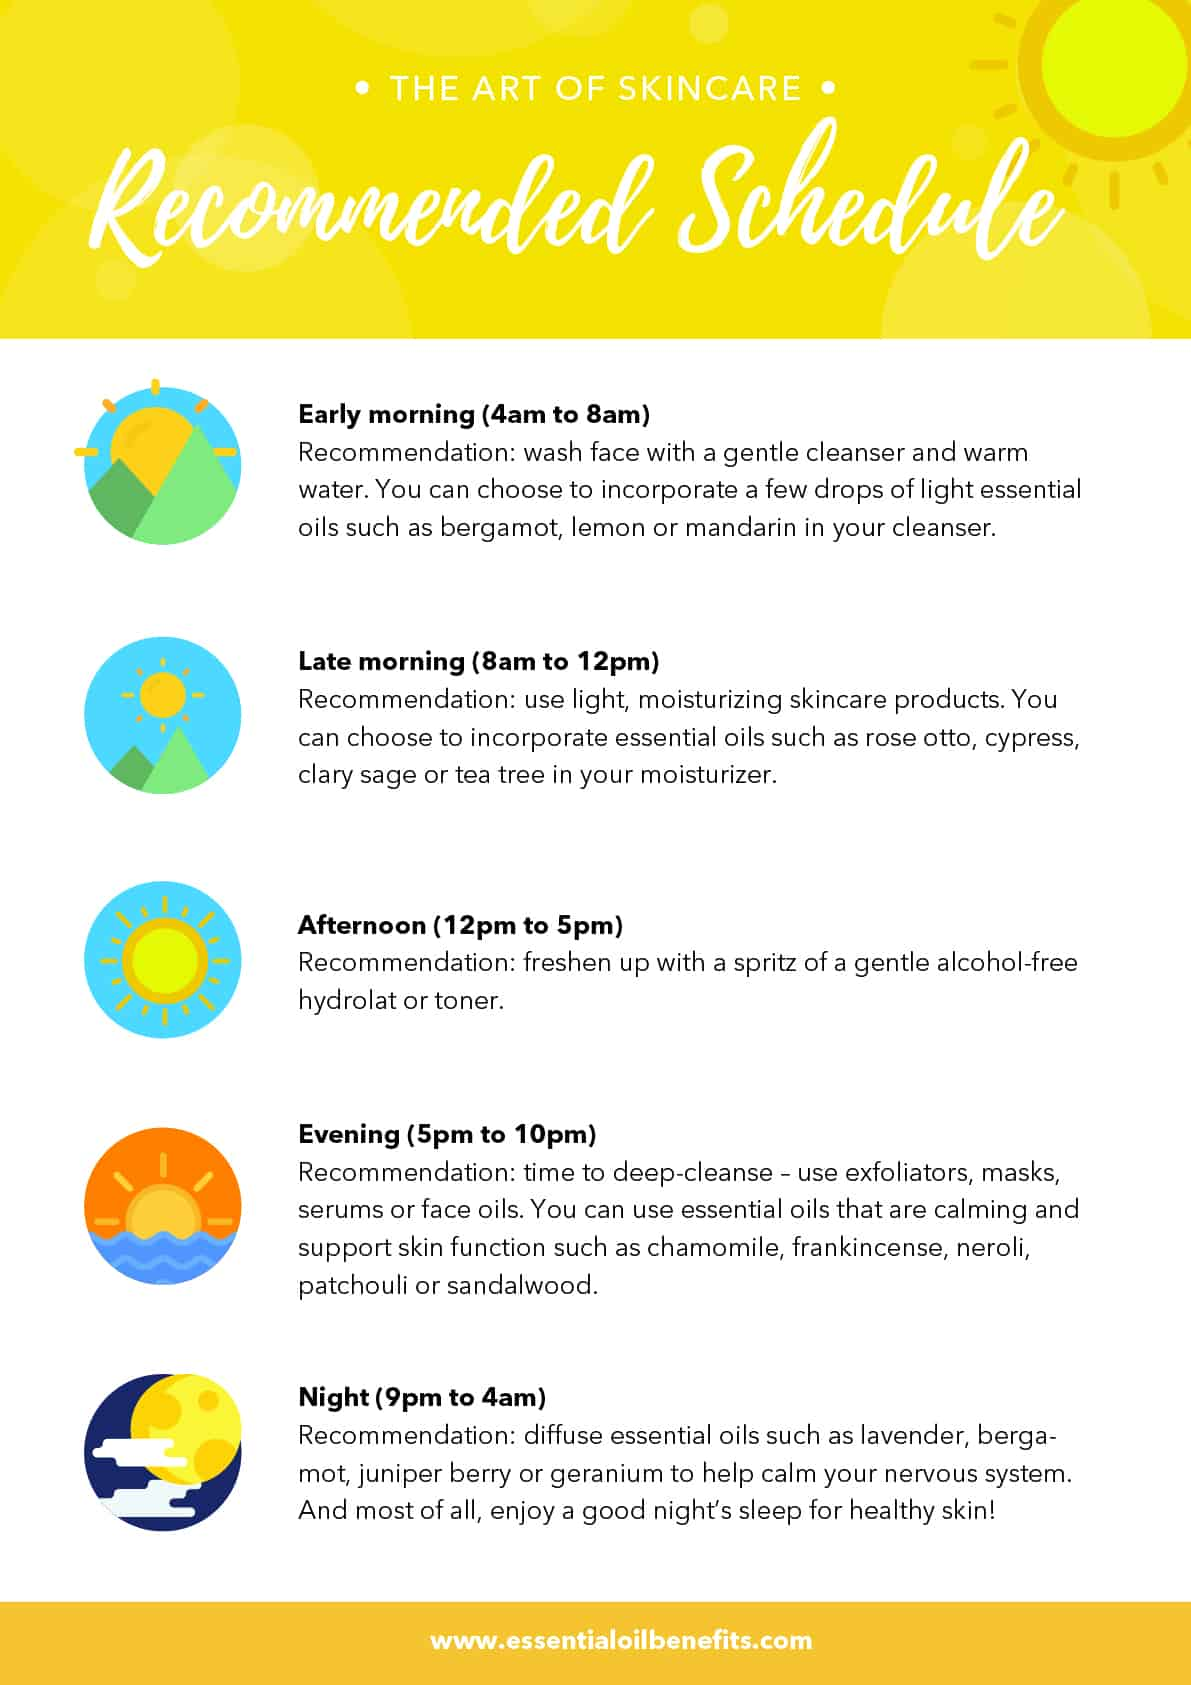 The Ultimate Guide To Morning And Nighttime Skincare Routine! Essential Oil Benefits